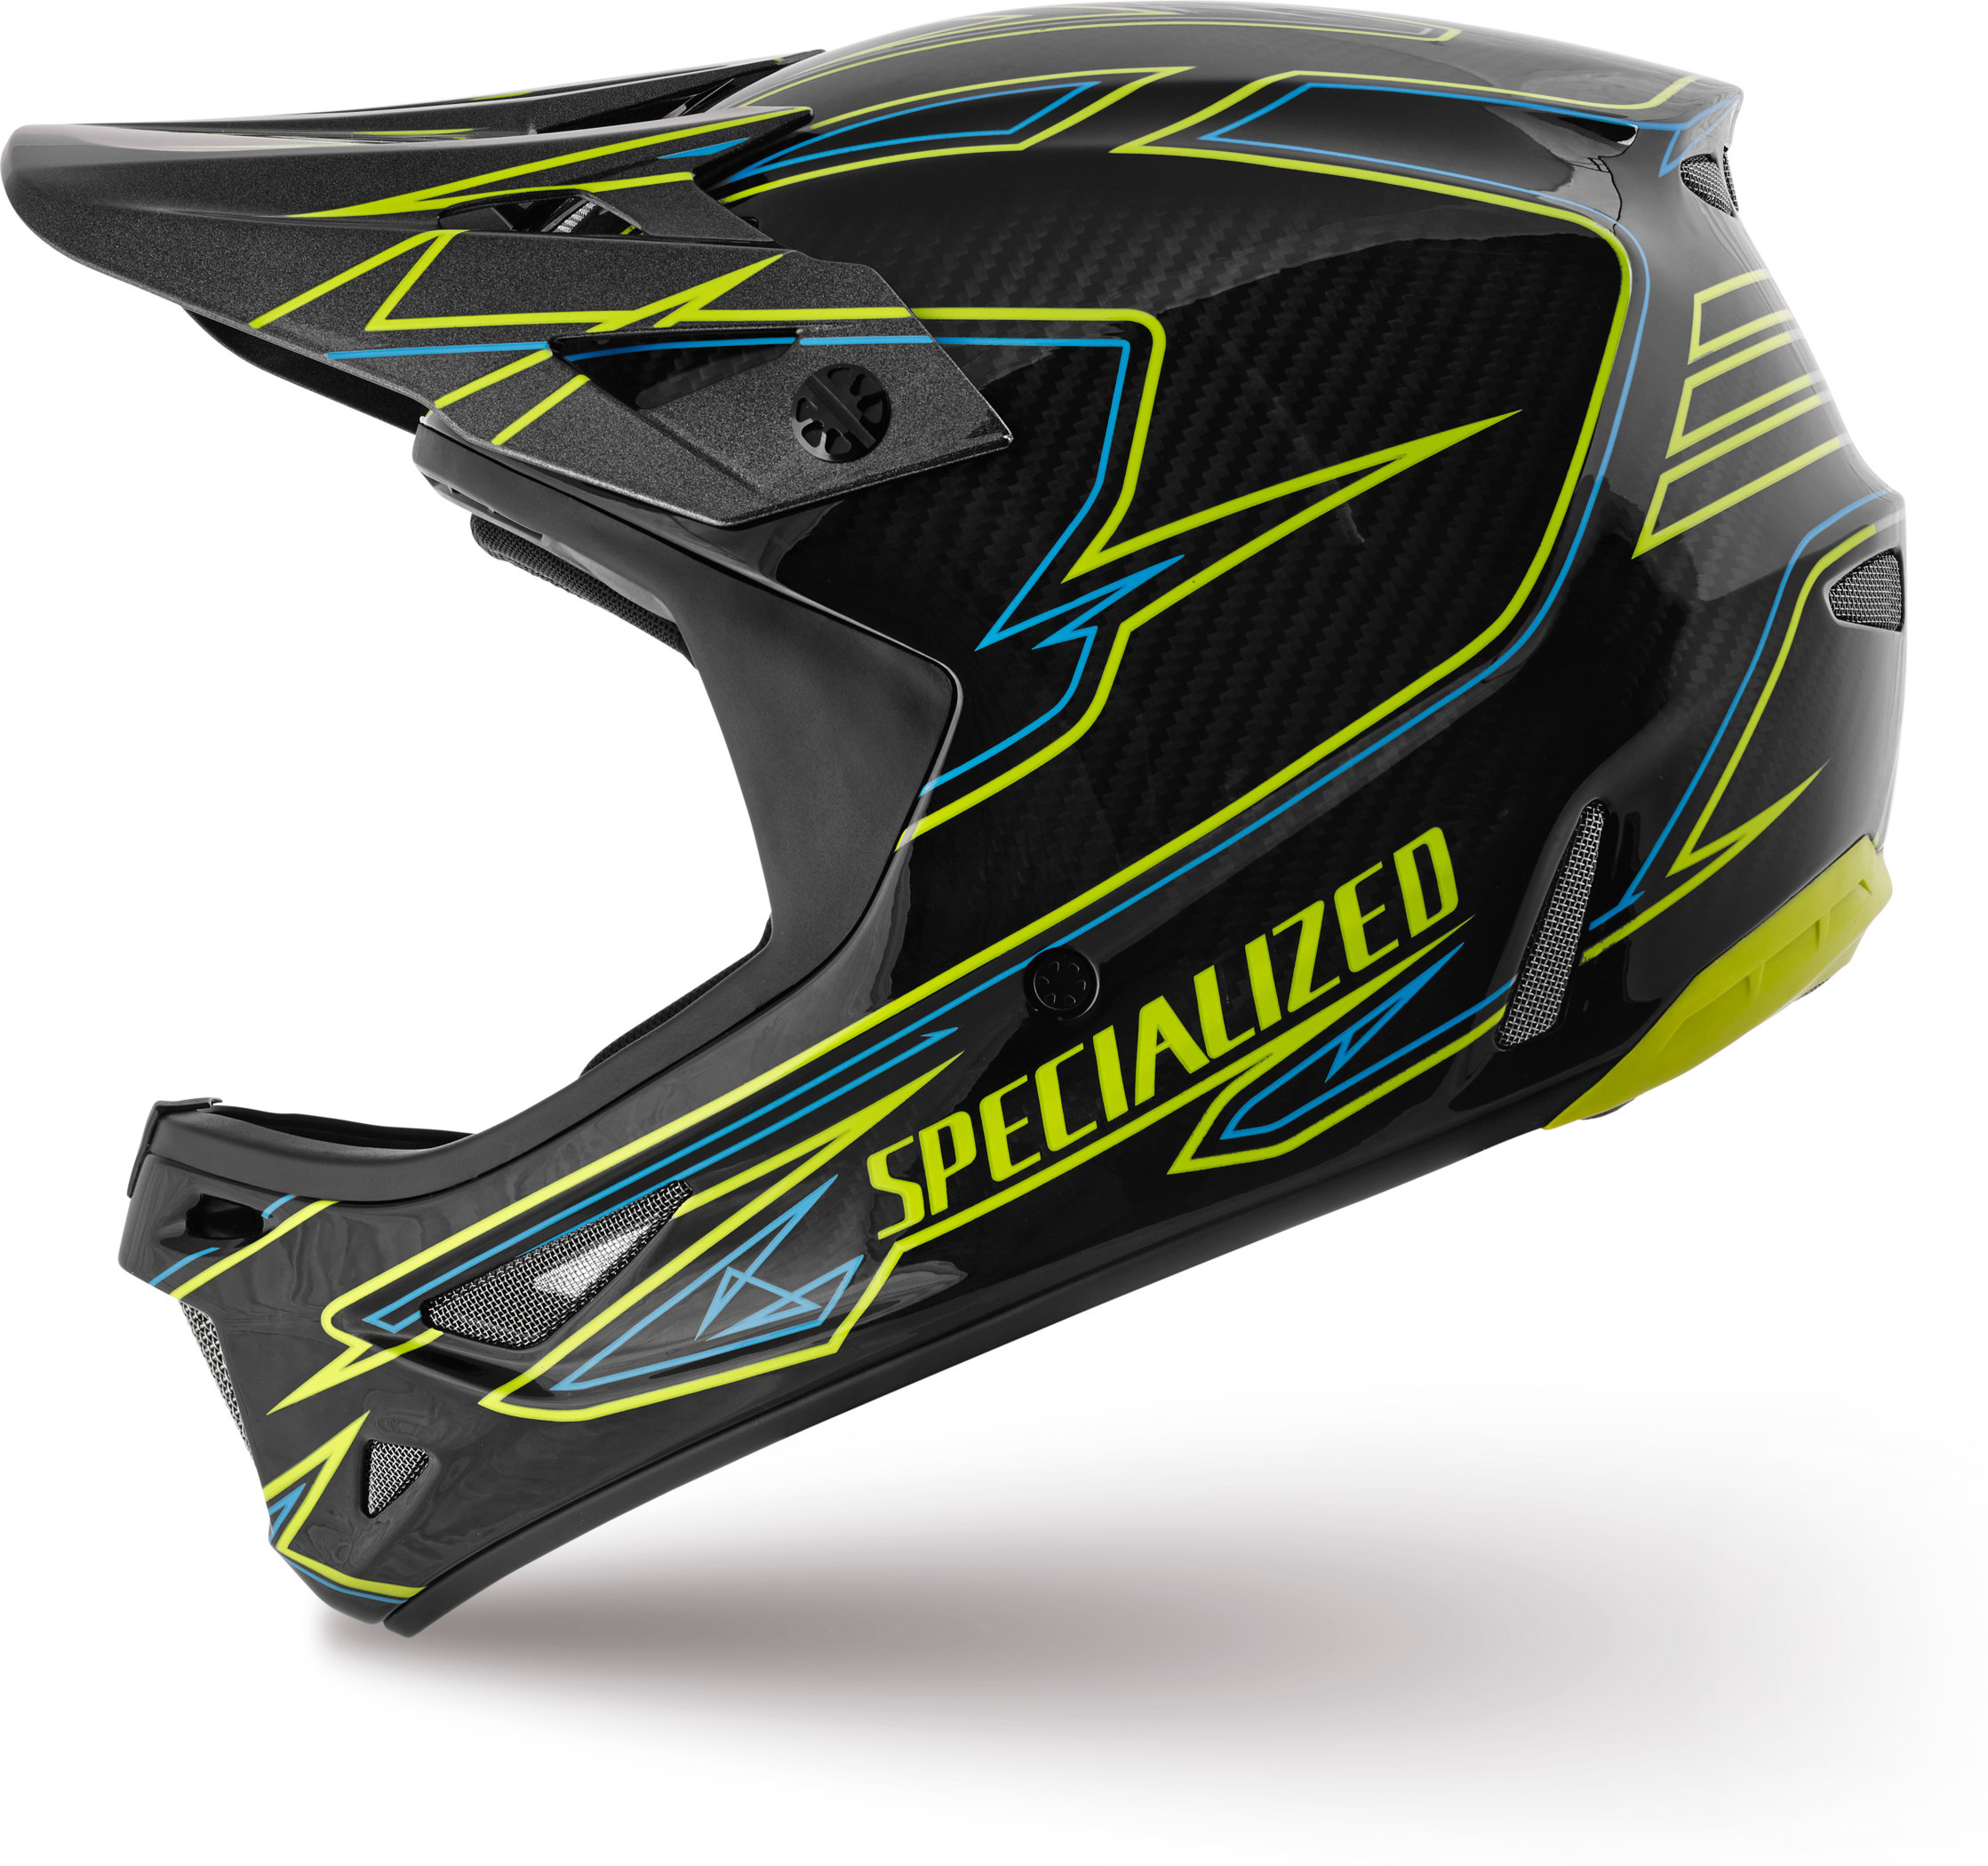 Specialized Dissident Hyper Green/Neon Blue Transmit L - Specialized Dissident Hyper Green/Neon Blue Transmit L